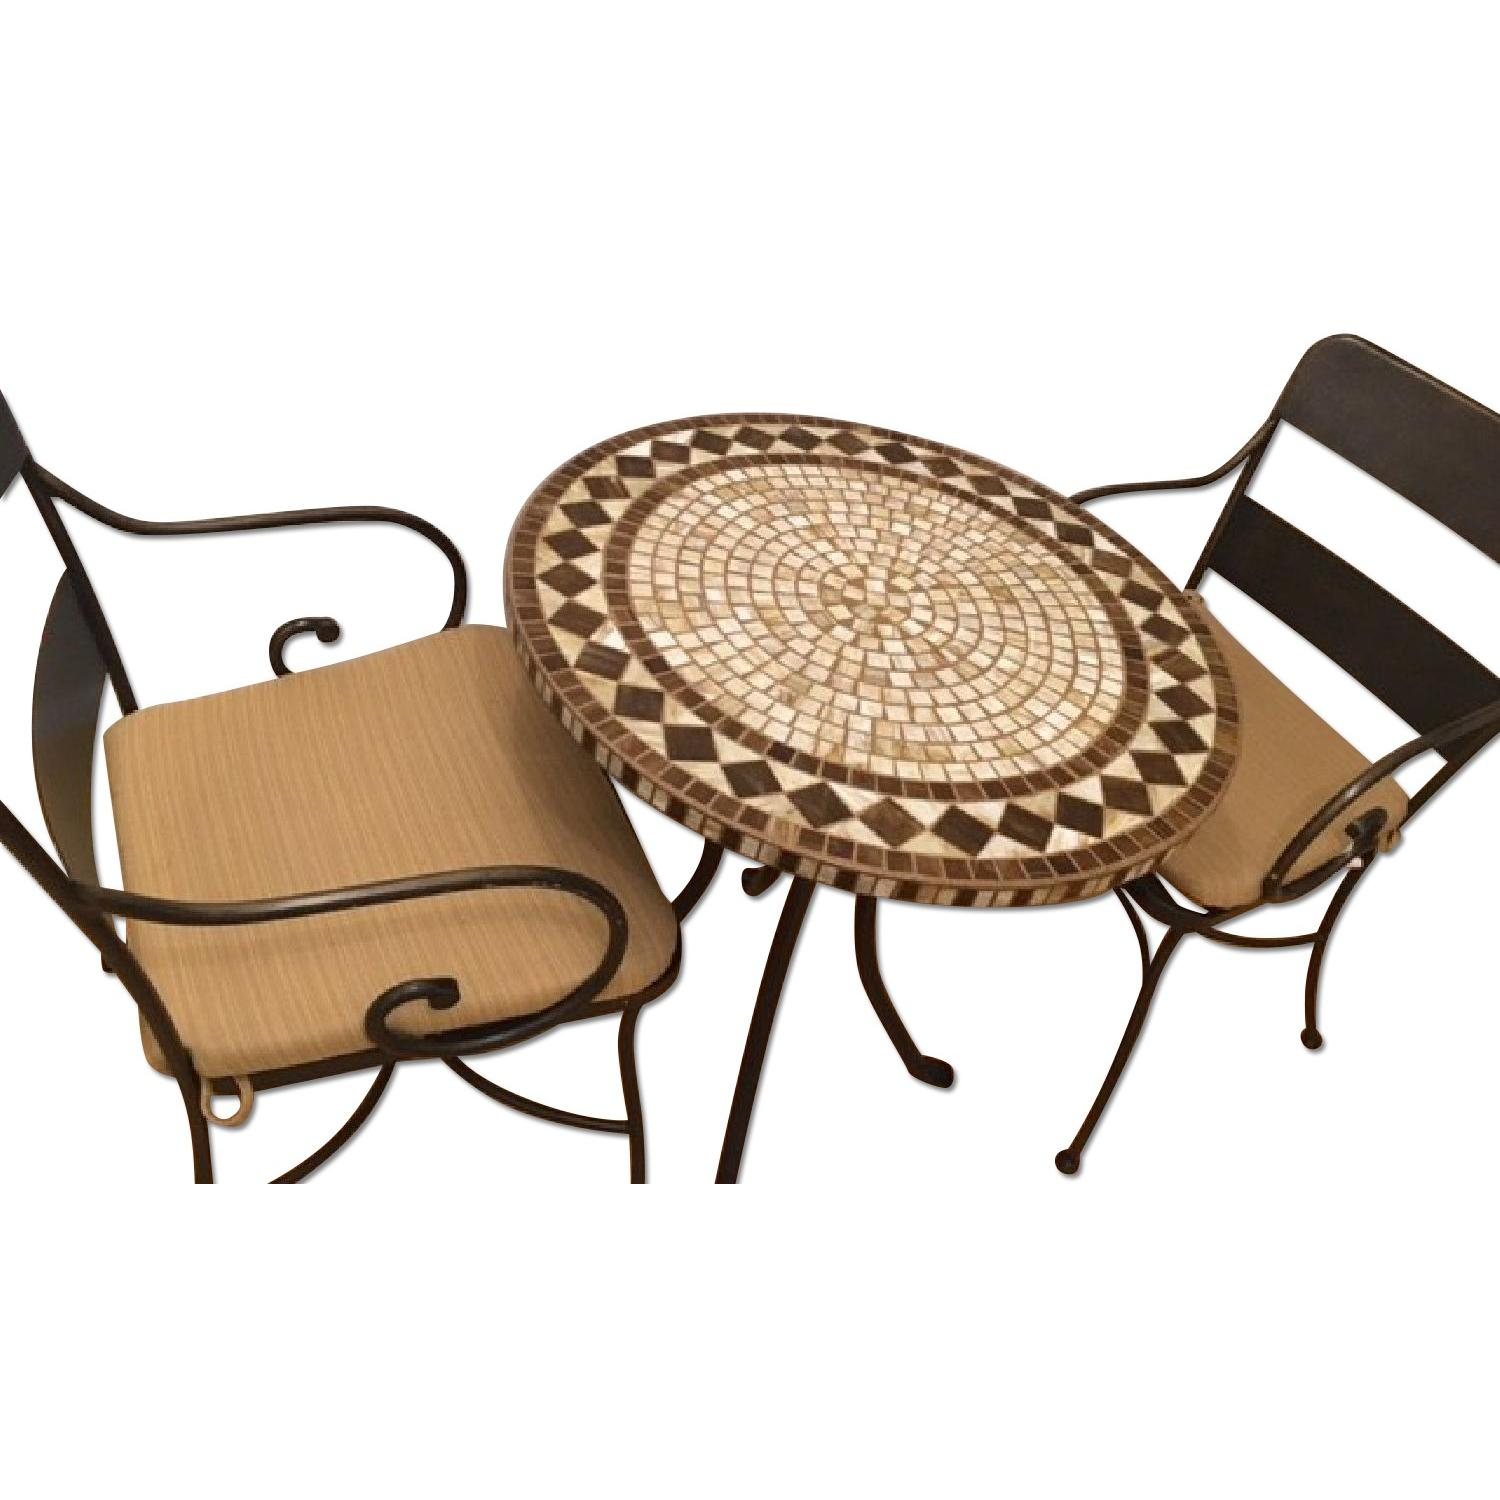 Mosaic Patio Table w/ 2 Chairs - image-0